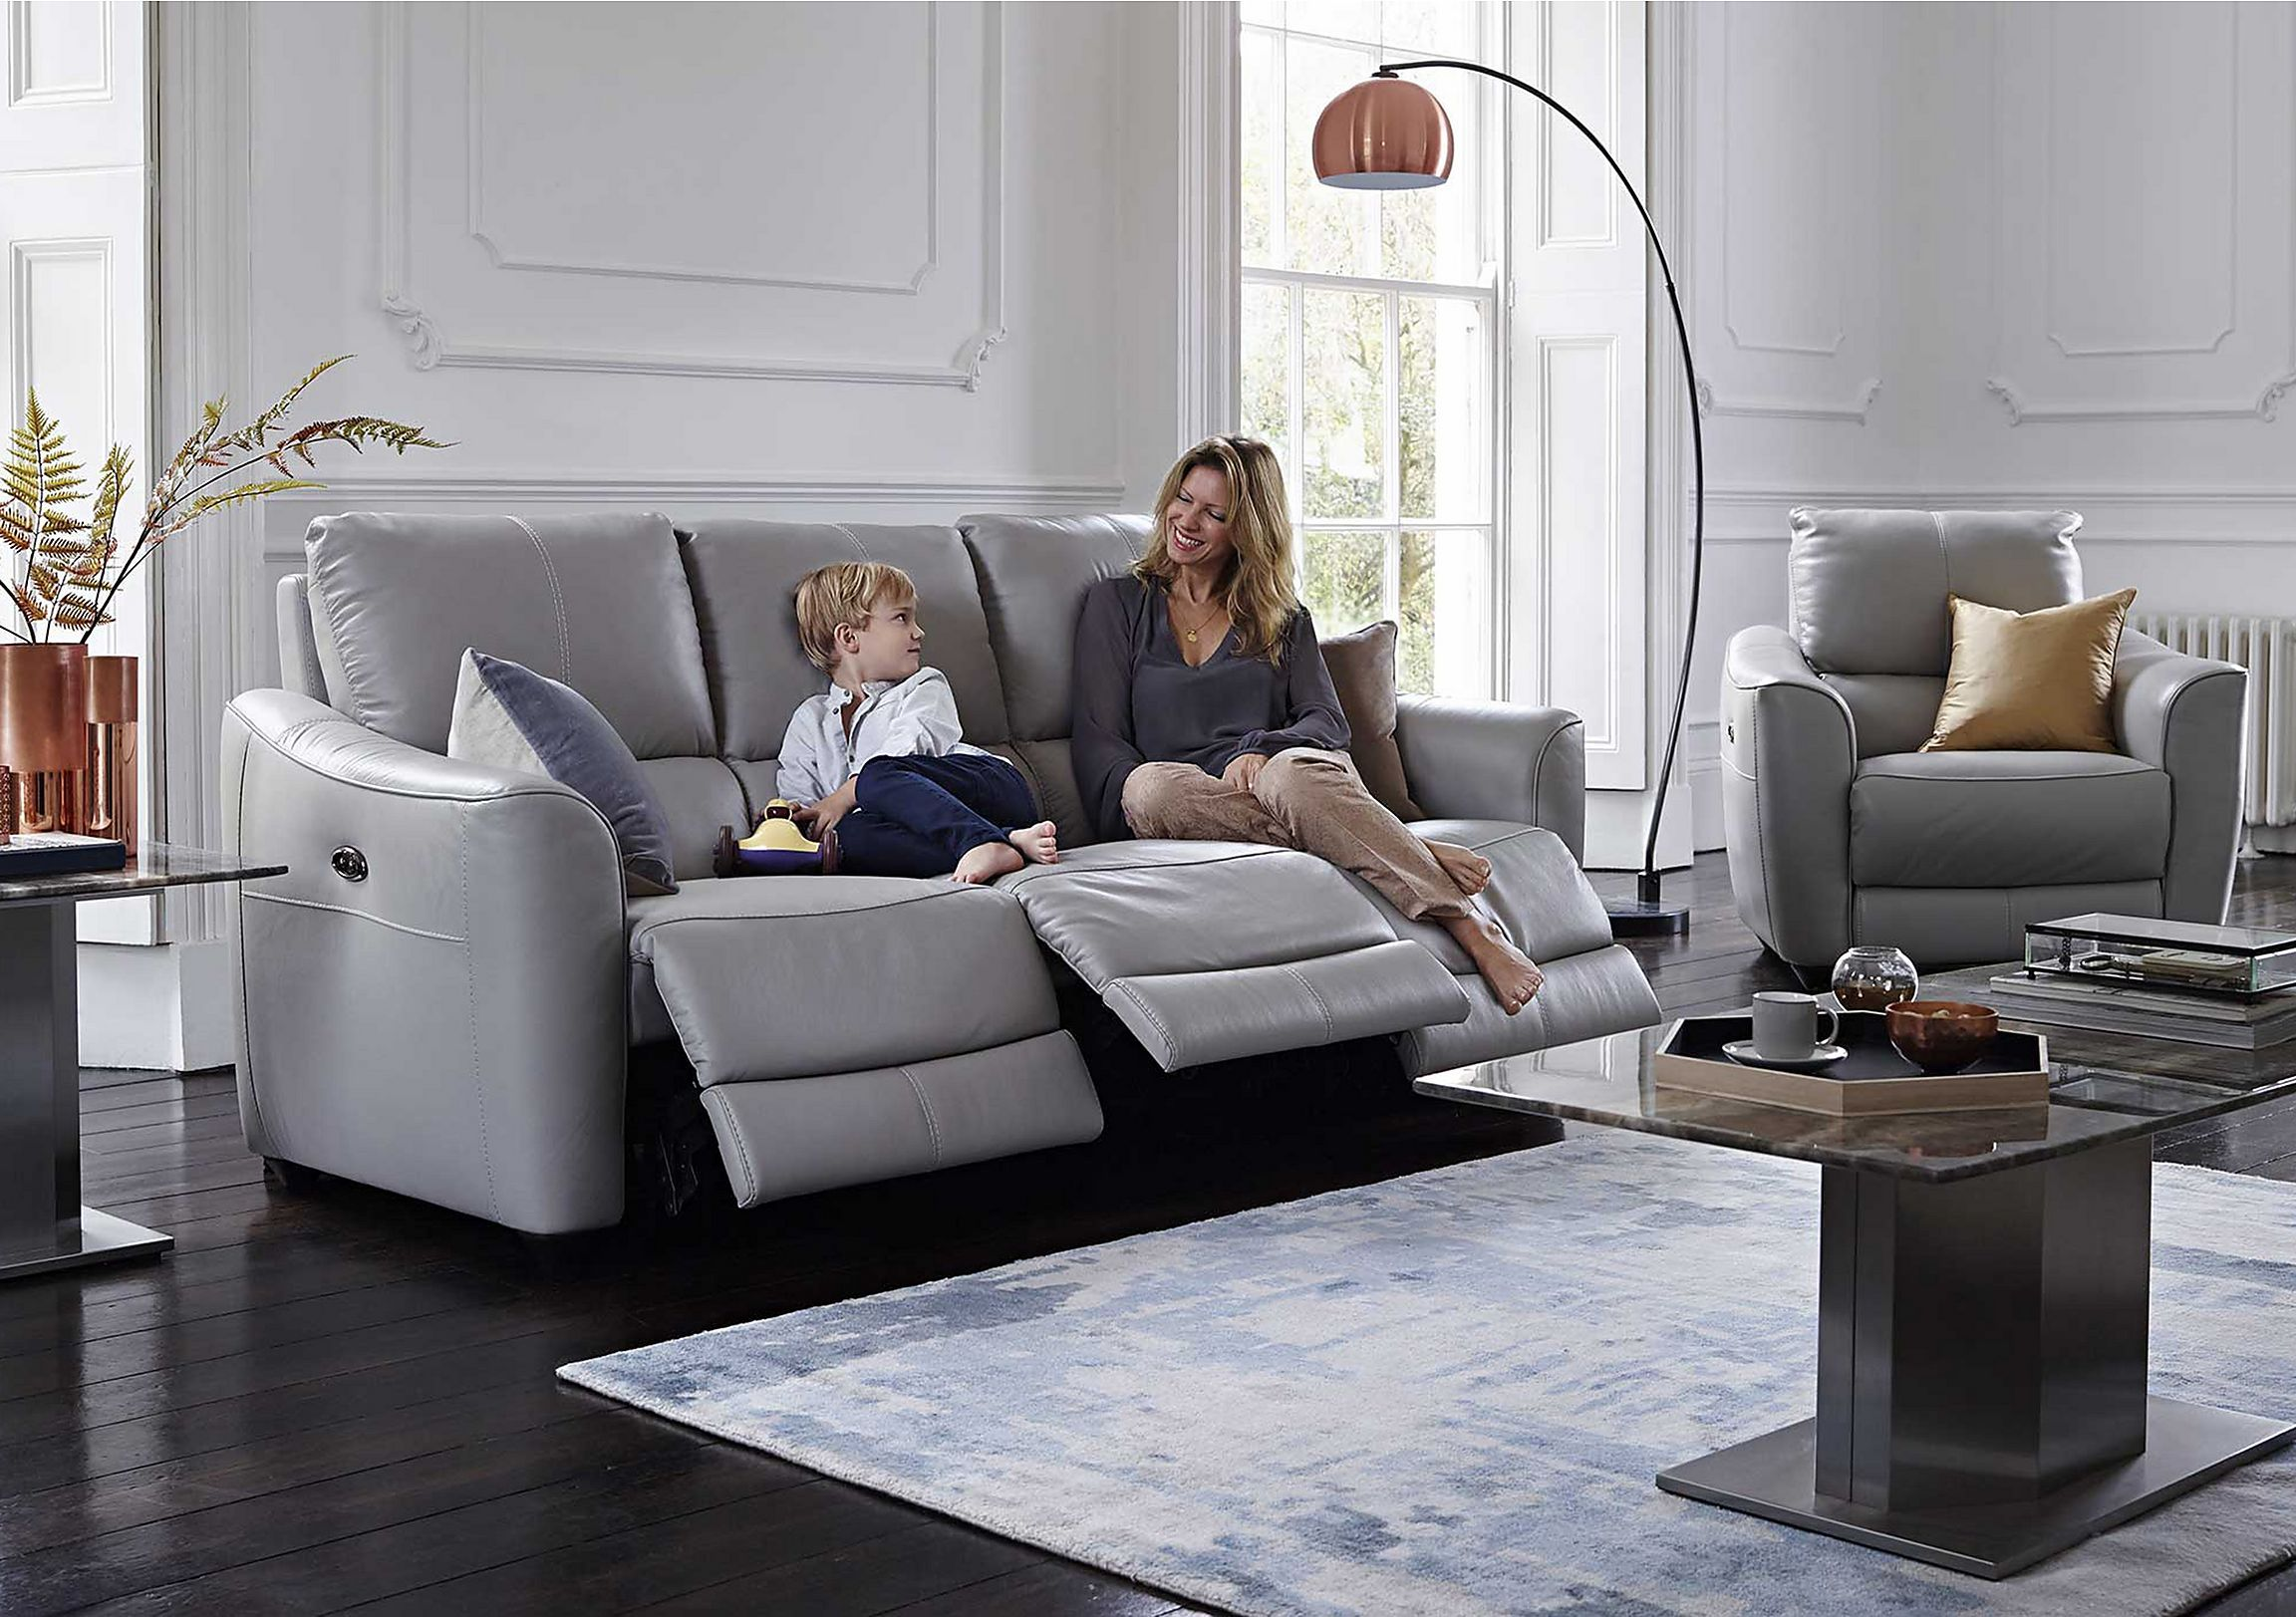 Trilogy 3 Seater Leather Recliner Sofa